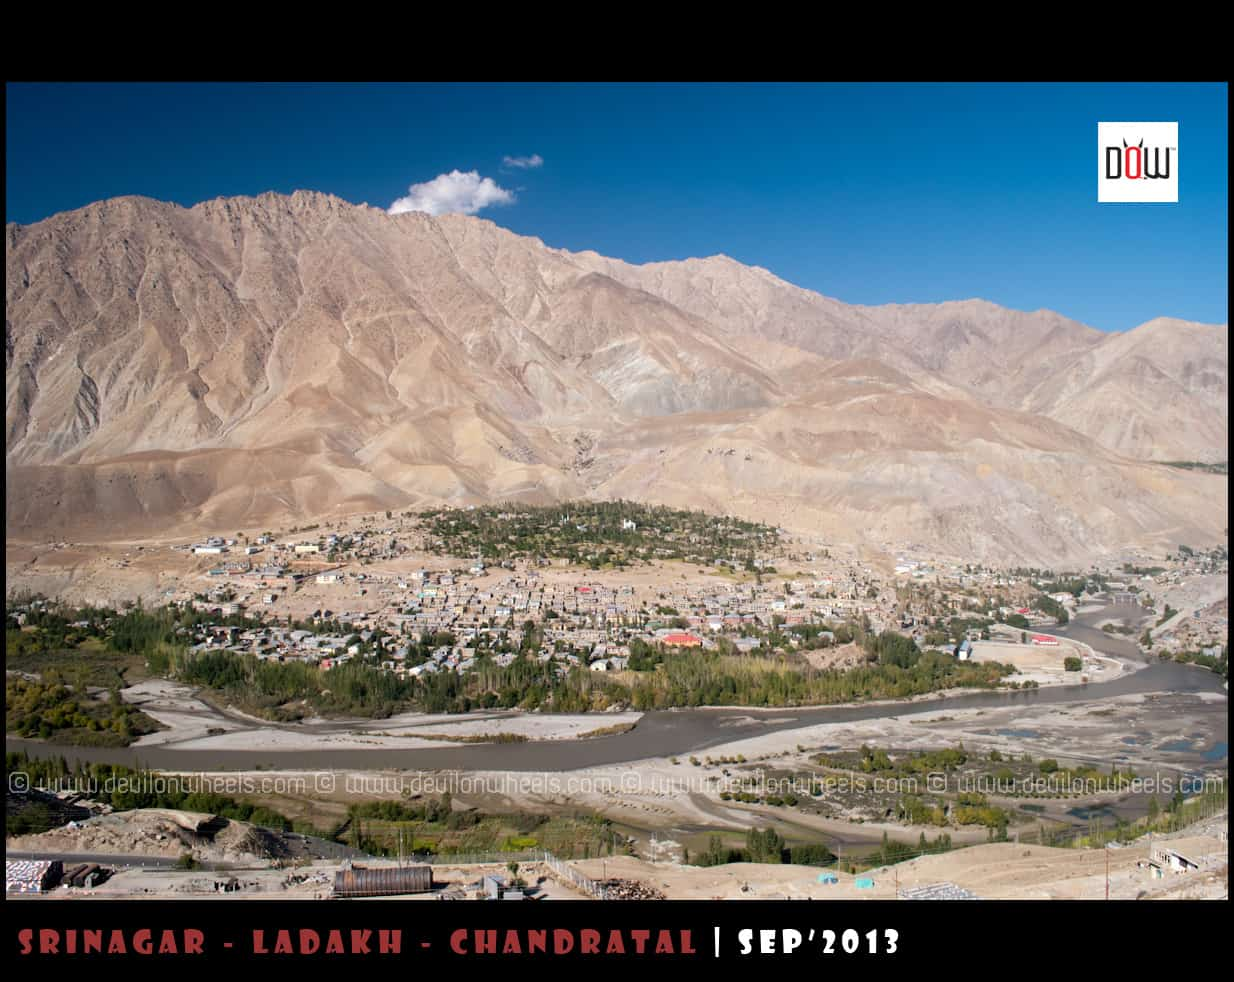 Kargil Town as seen from Srinagar - Leh Highway